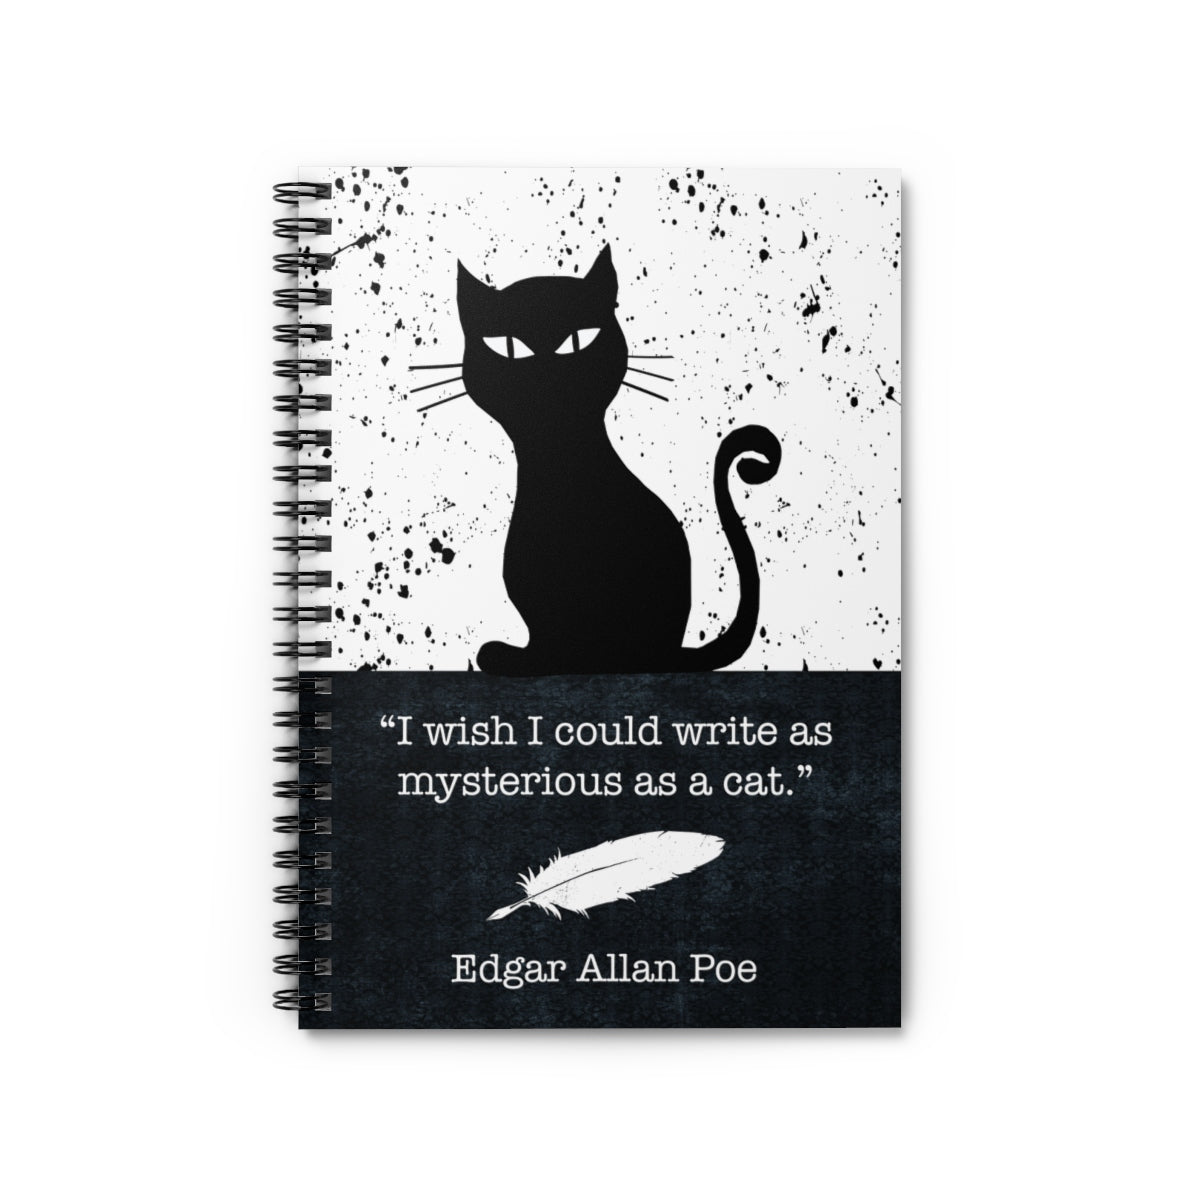 Poe Black Cat Writer's Spiral Ruled Journal